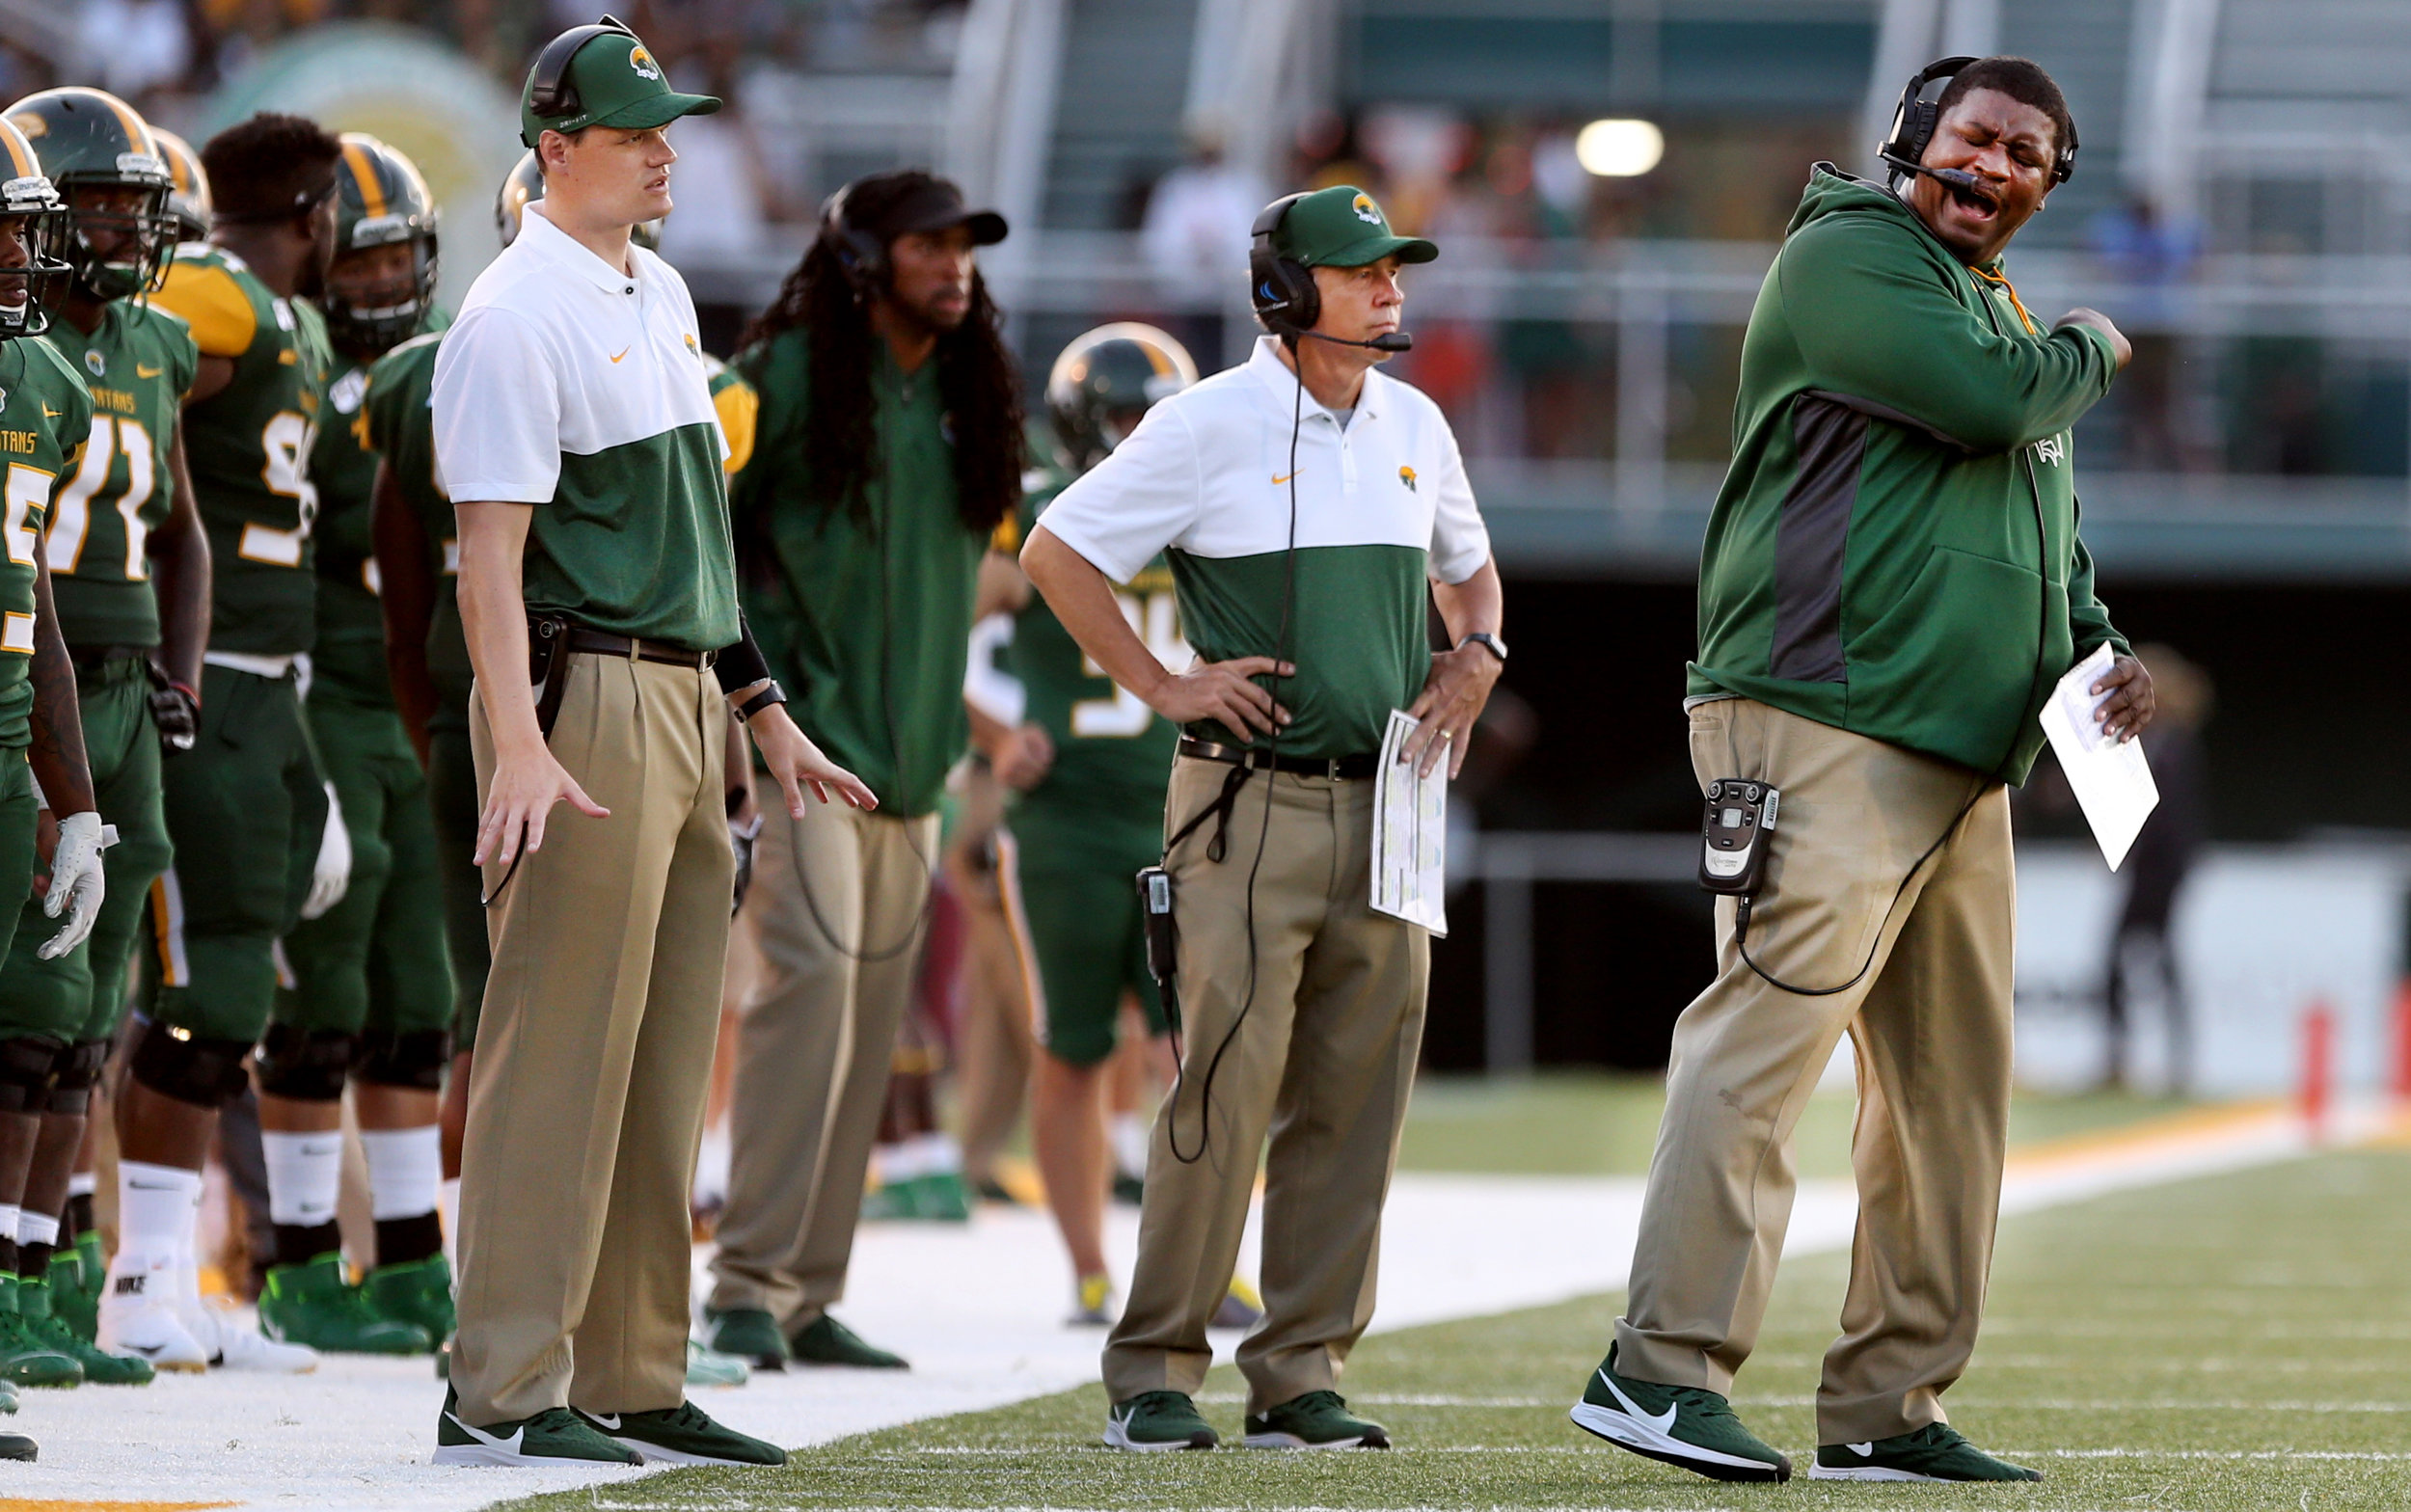 Norfolk State head coach Latrell Scott, right, reacts to an officials call in a game against Virginia State, Saturday, September 7, 2019 at Dick Price Stadium in Norfolk.